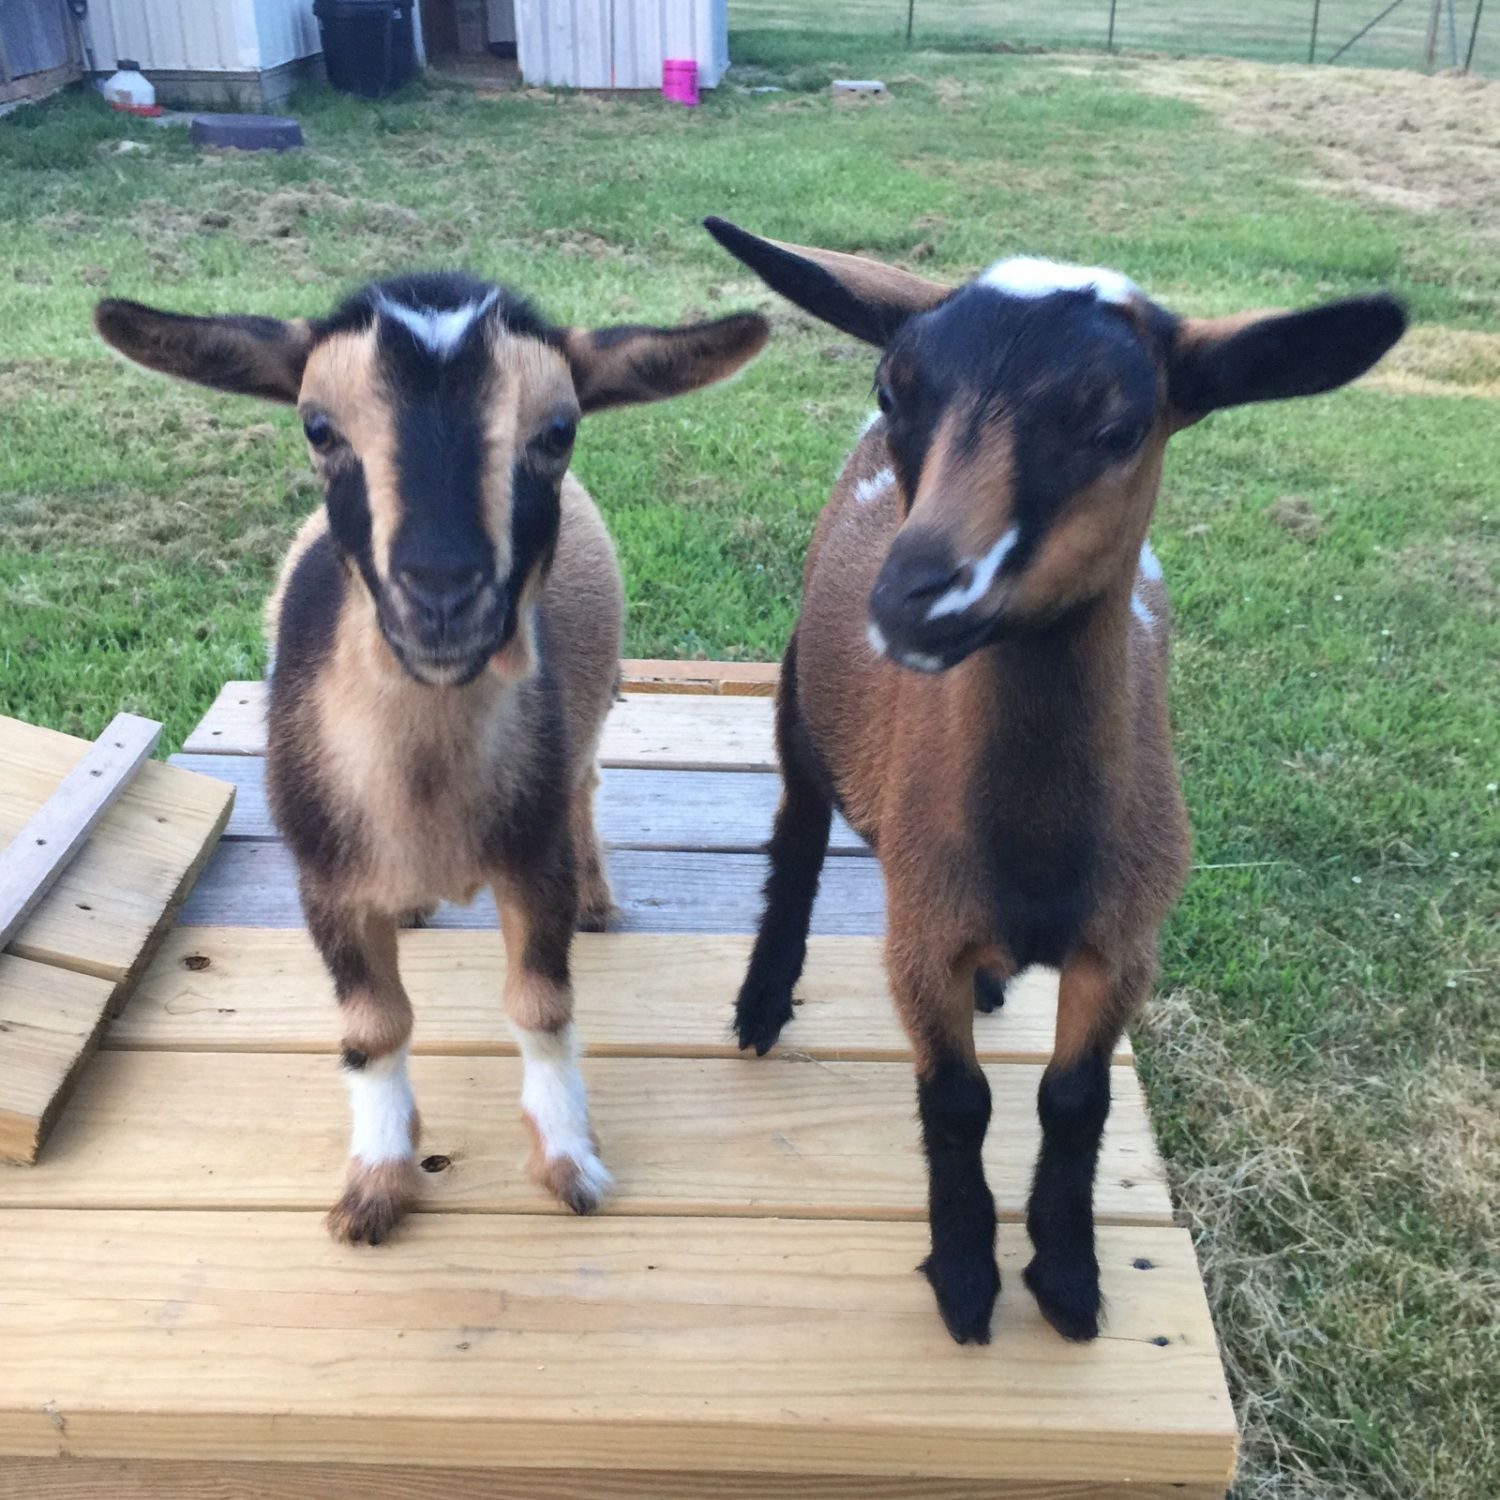 LRH97's photos in Goats (pictures, stories, tips, etc.)